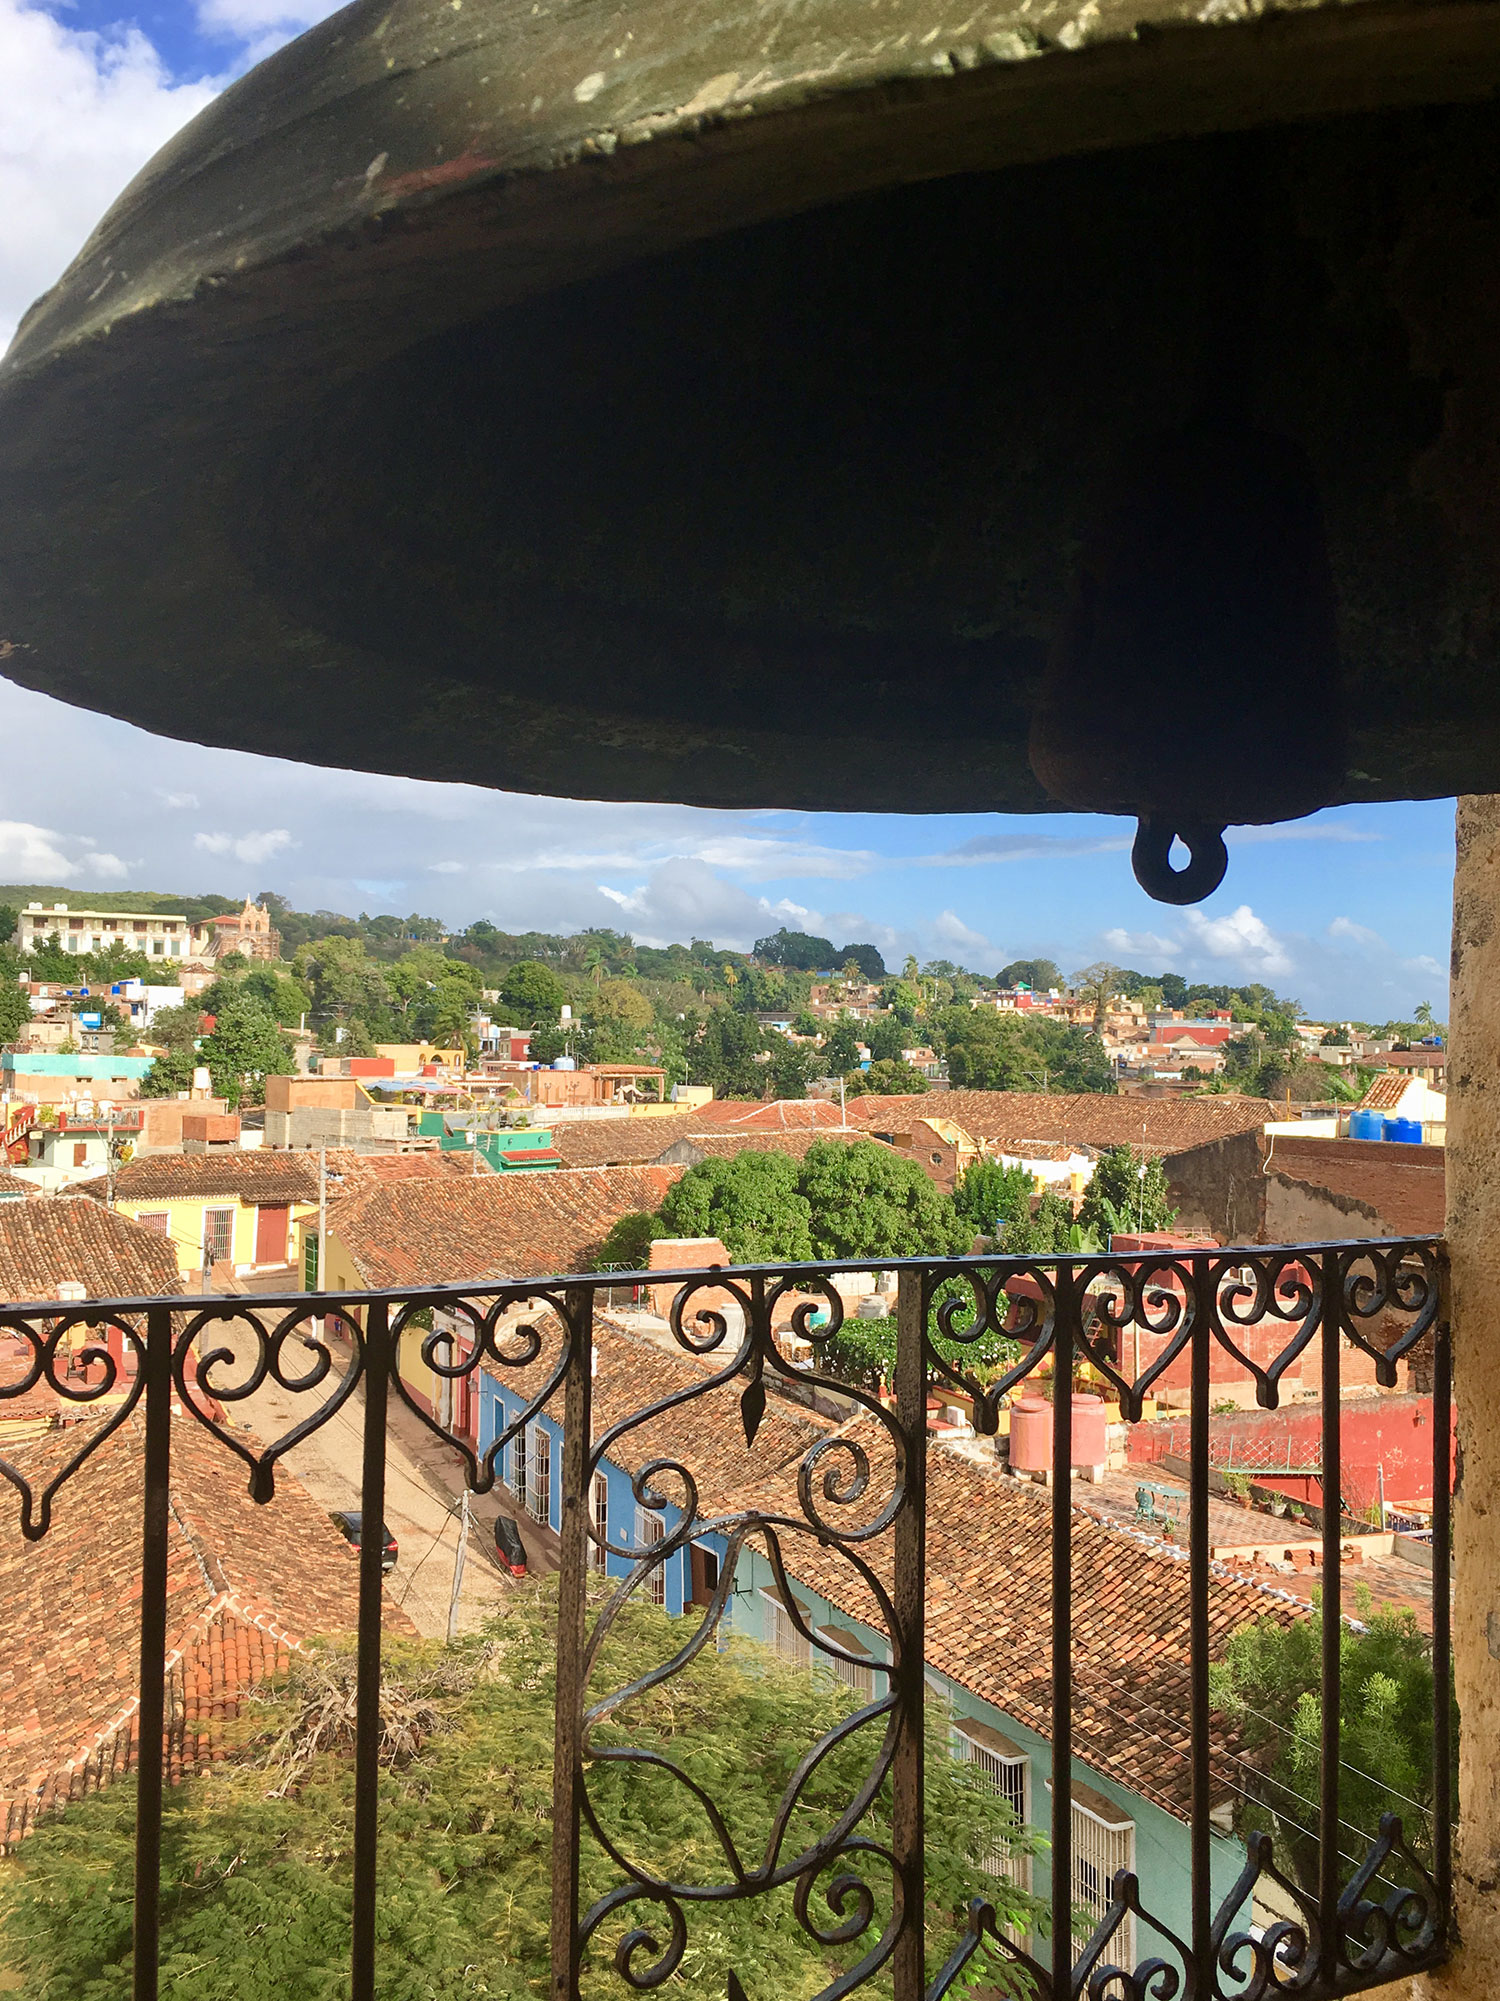 Hammocks_and_Ruins_What_to_Do_Cuba_colonial_sugar_barons_convent_Francis_bell_tower_museum_town_Trinidad_12.jpg